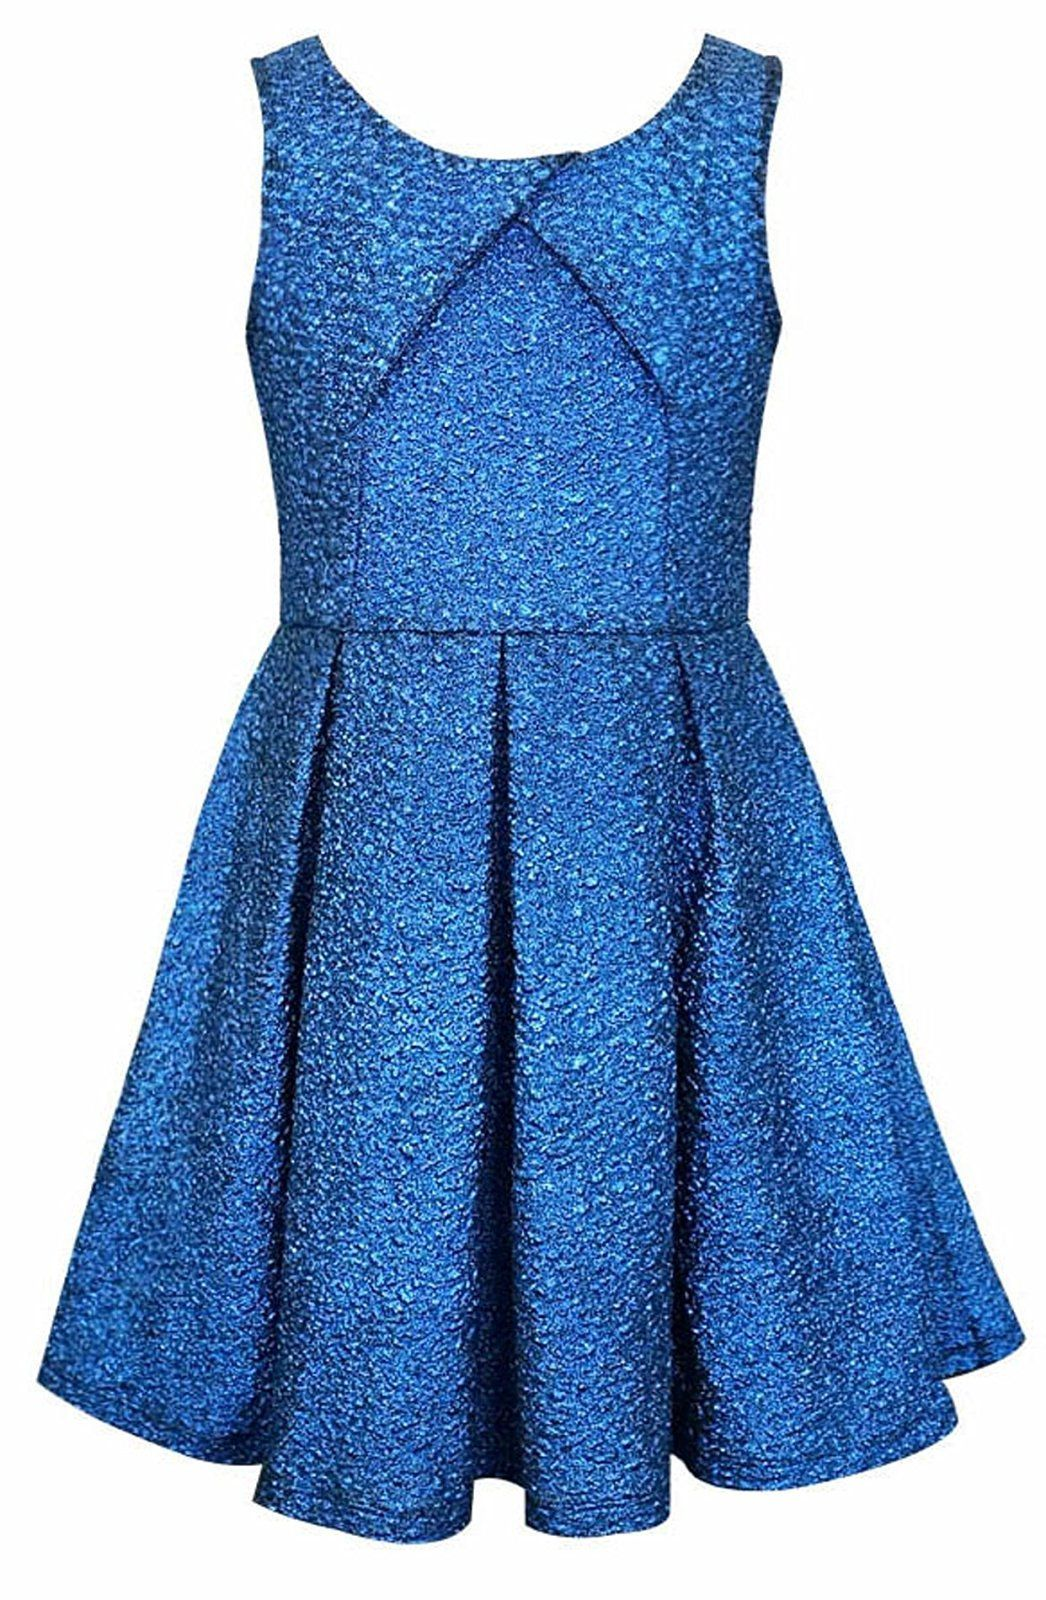 Big girls tween blue cracked knit crossover pleat fit flare